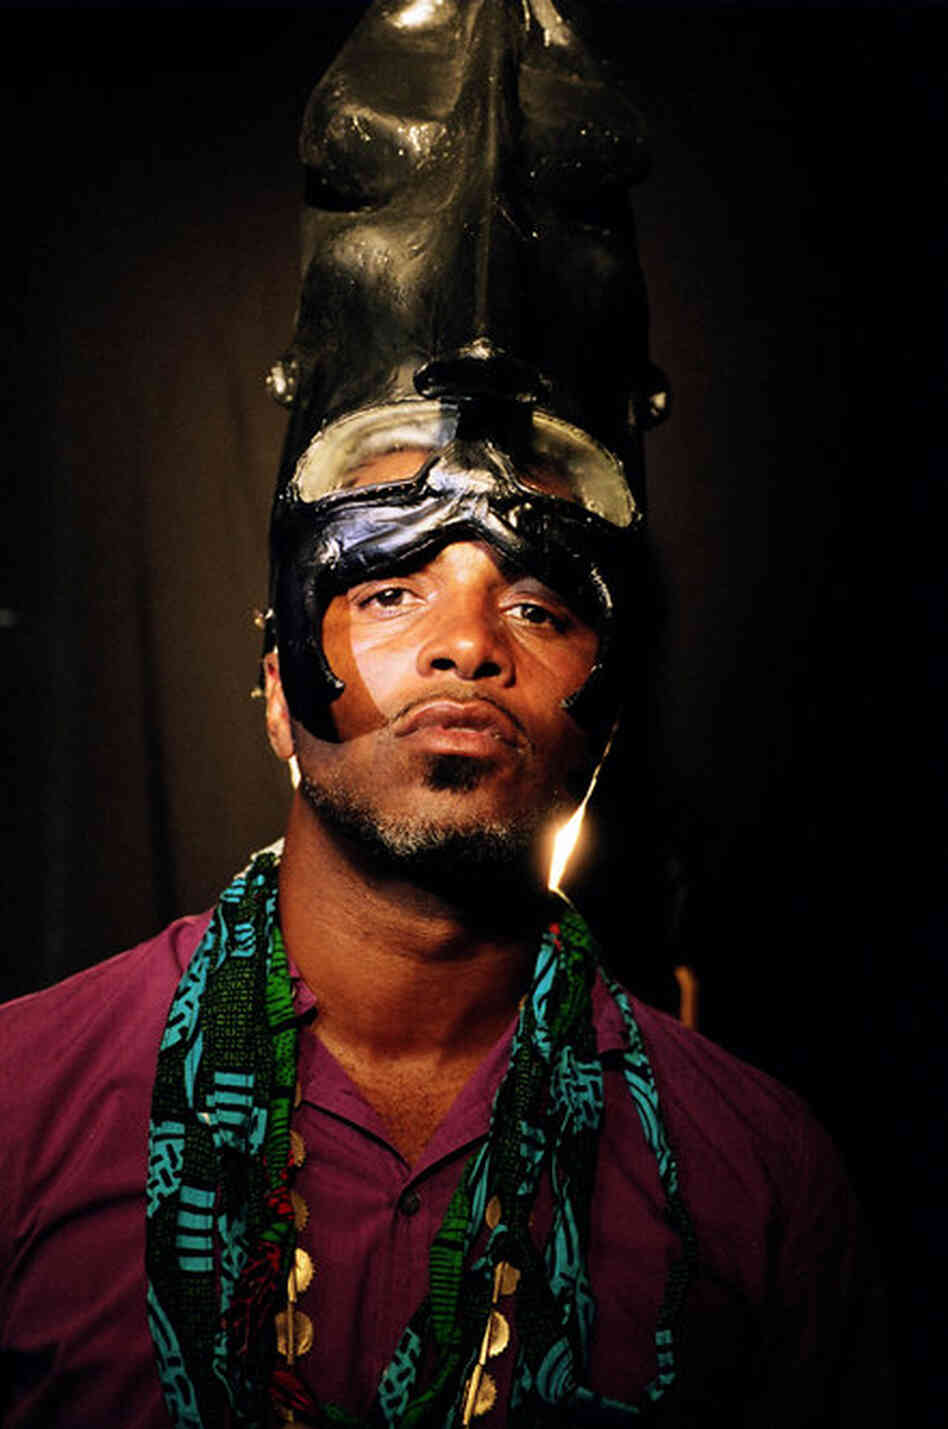 Palaceer Lazaro (a.k.a. Ishmael Butler) of Shabazz Palaces in a headdress made by Seattle artist Maikoiyo Alley-Barnes.